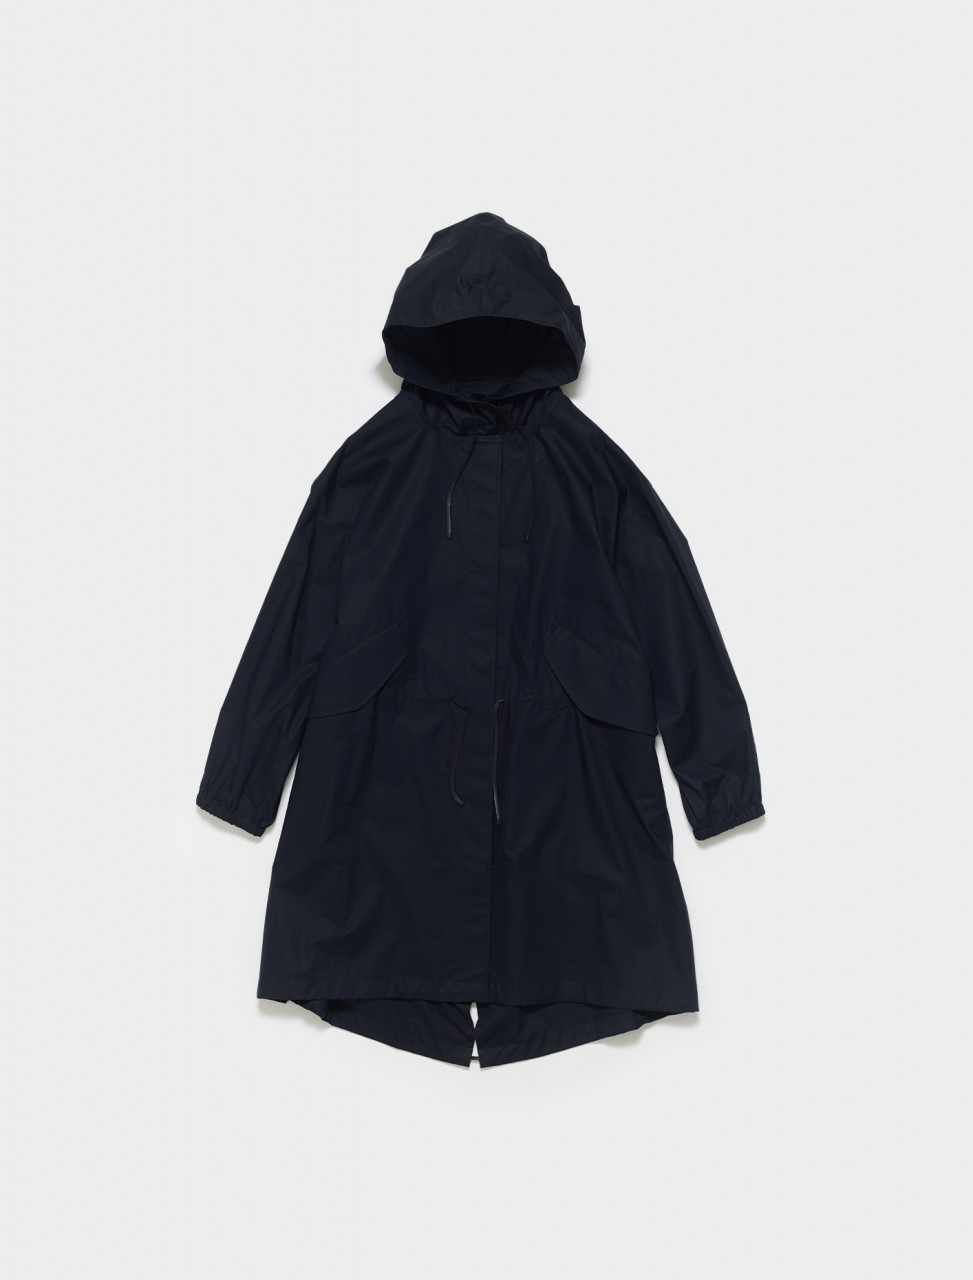 JSES430005-WS244900A-402 JIL SANDER COTTON PARKA IN DARK BLUE